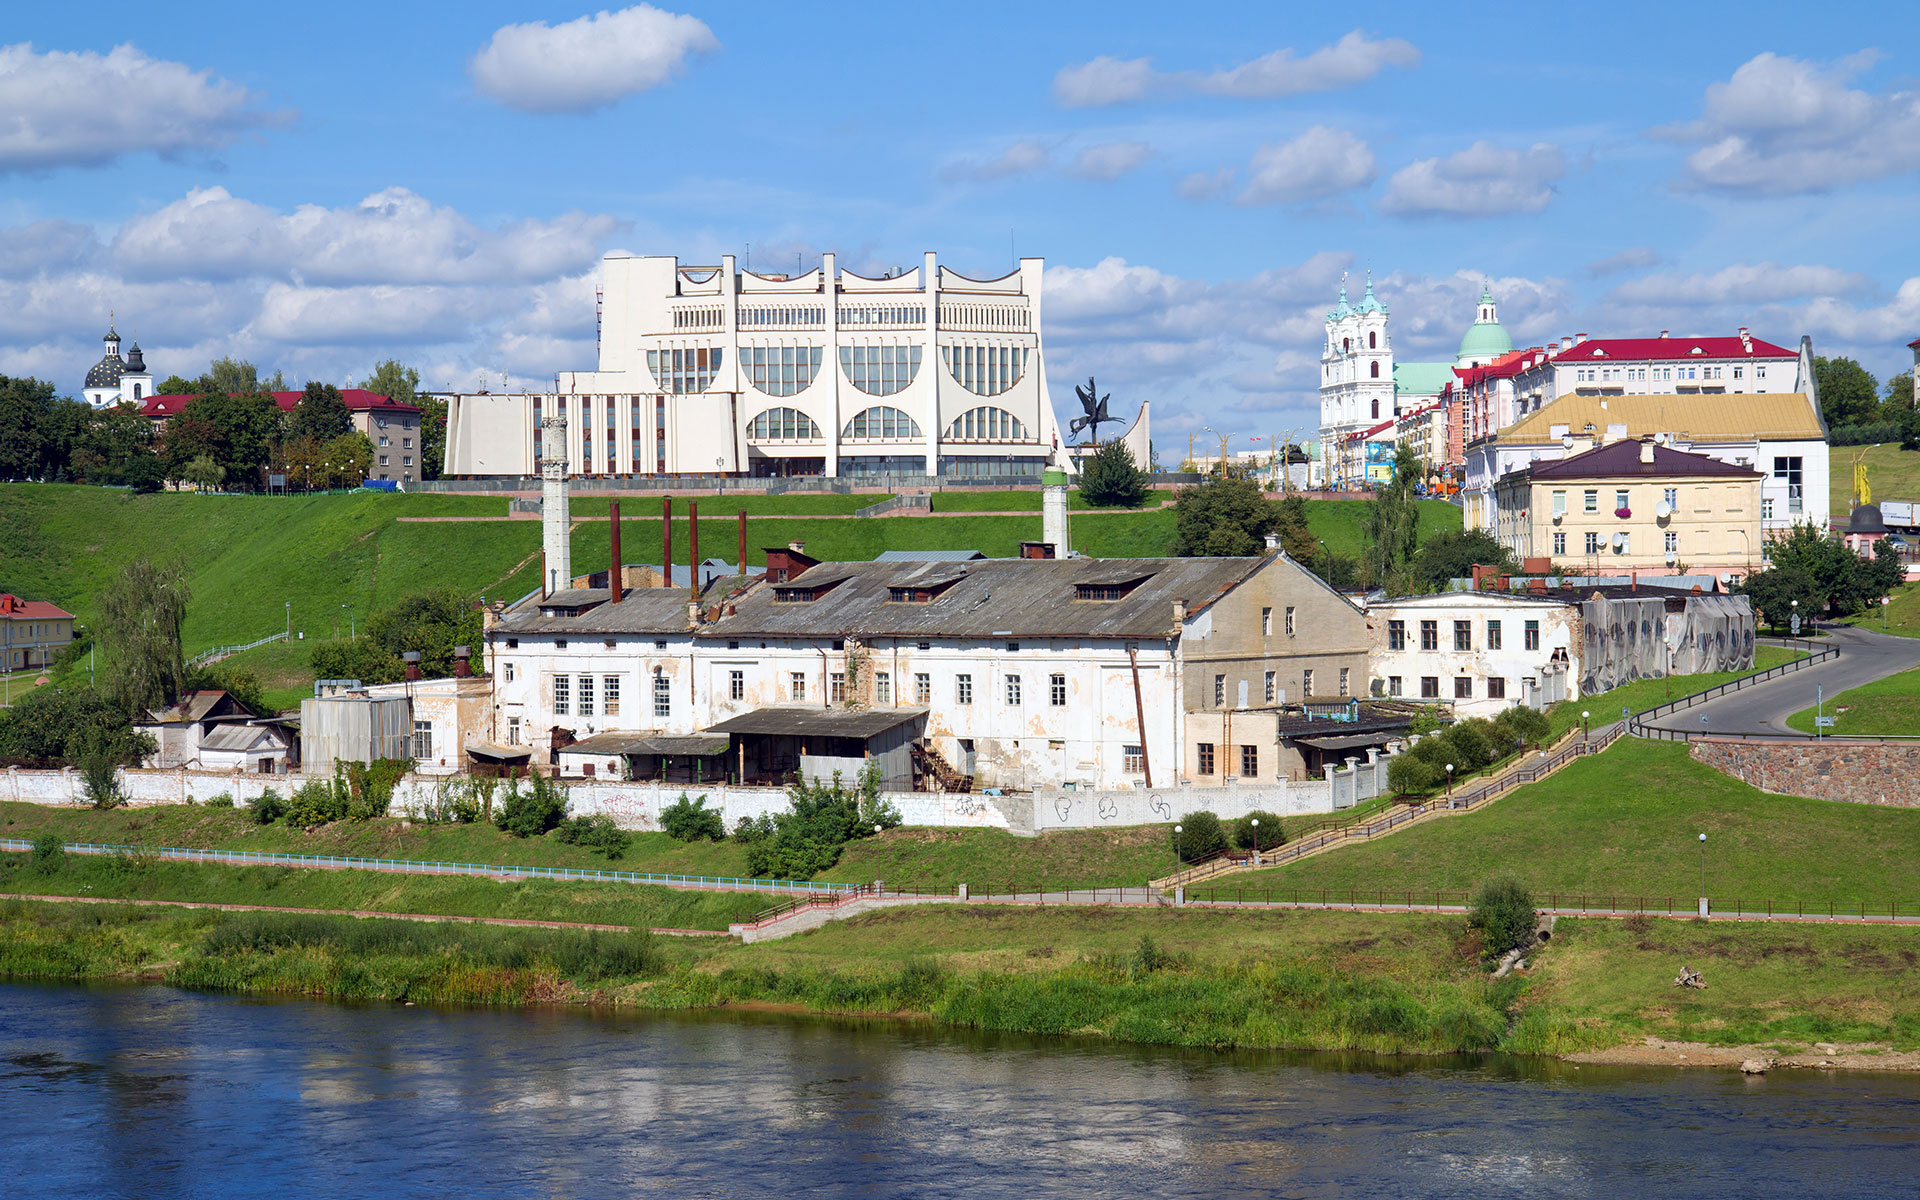 River Neman and the Belarusian town of Hrodna (photo © Eillen1981 / dreamstime.com).